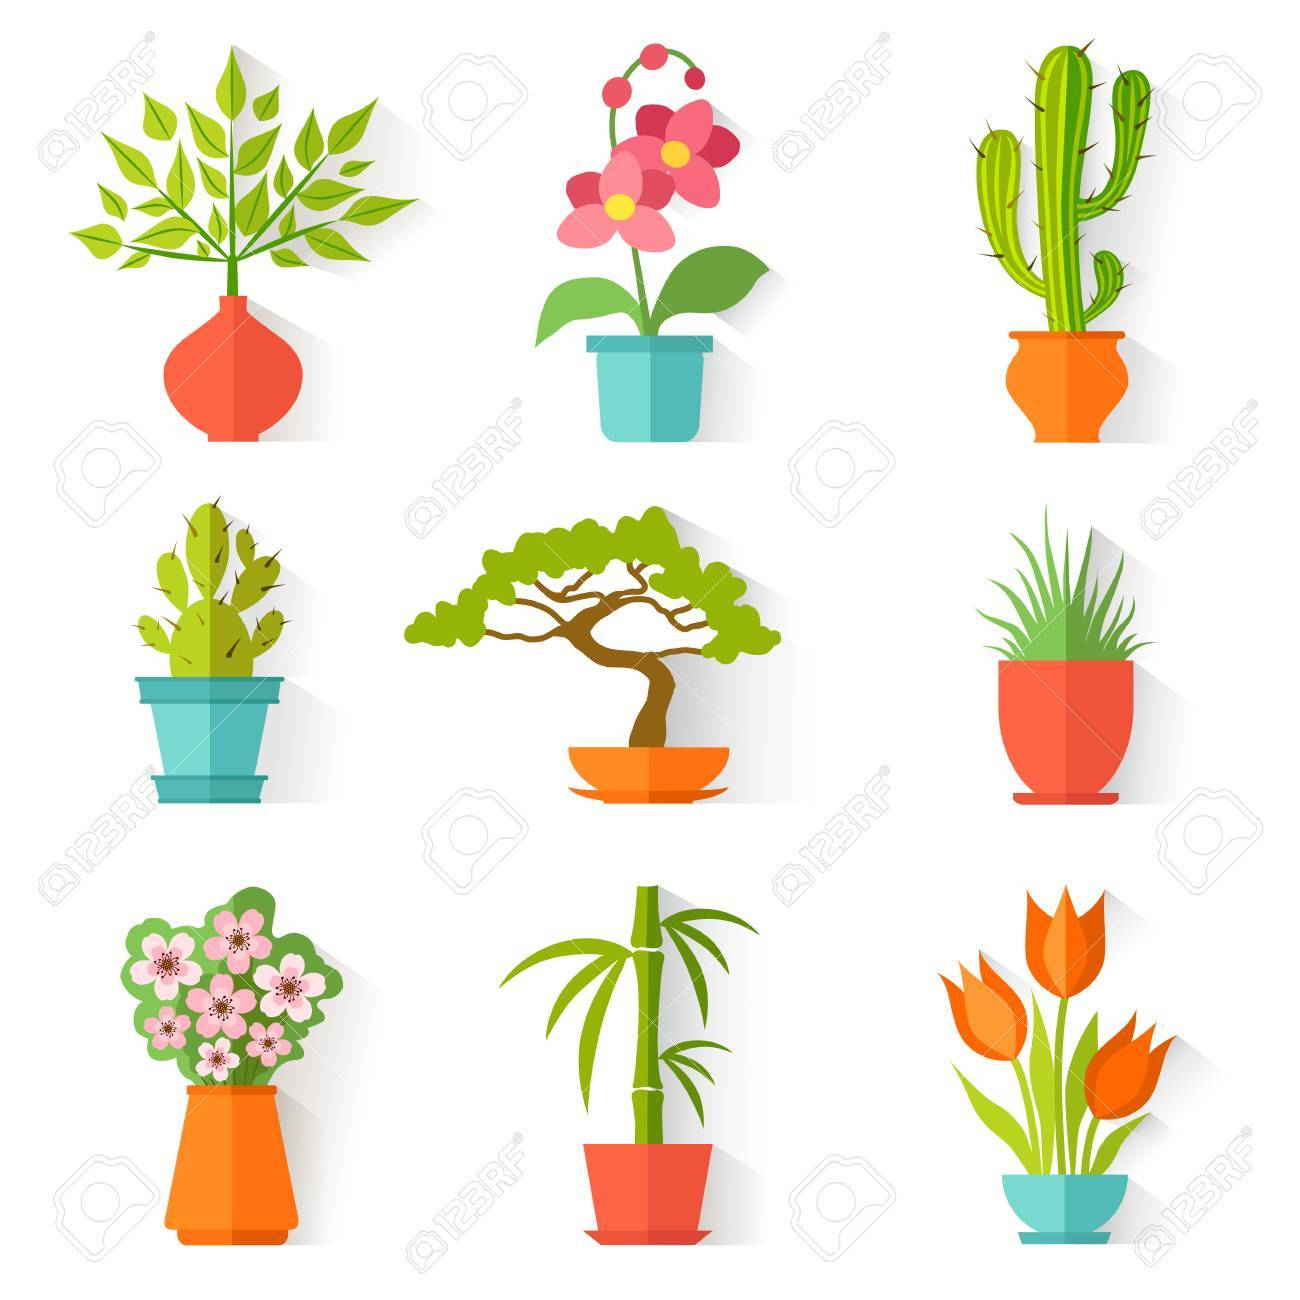 Set Of House Plants And Flowers In Flat Style Isolated On White